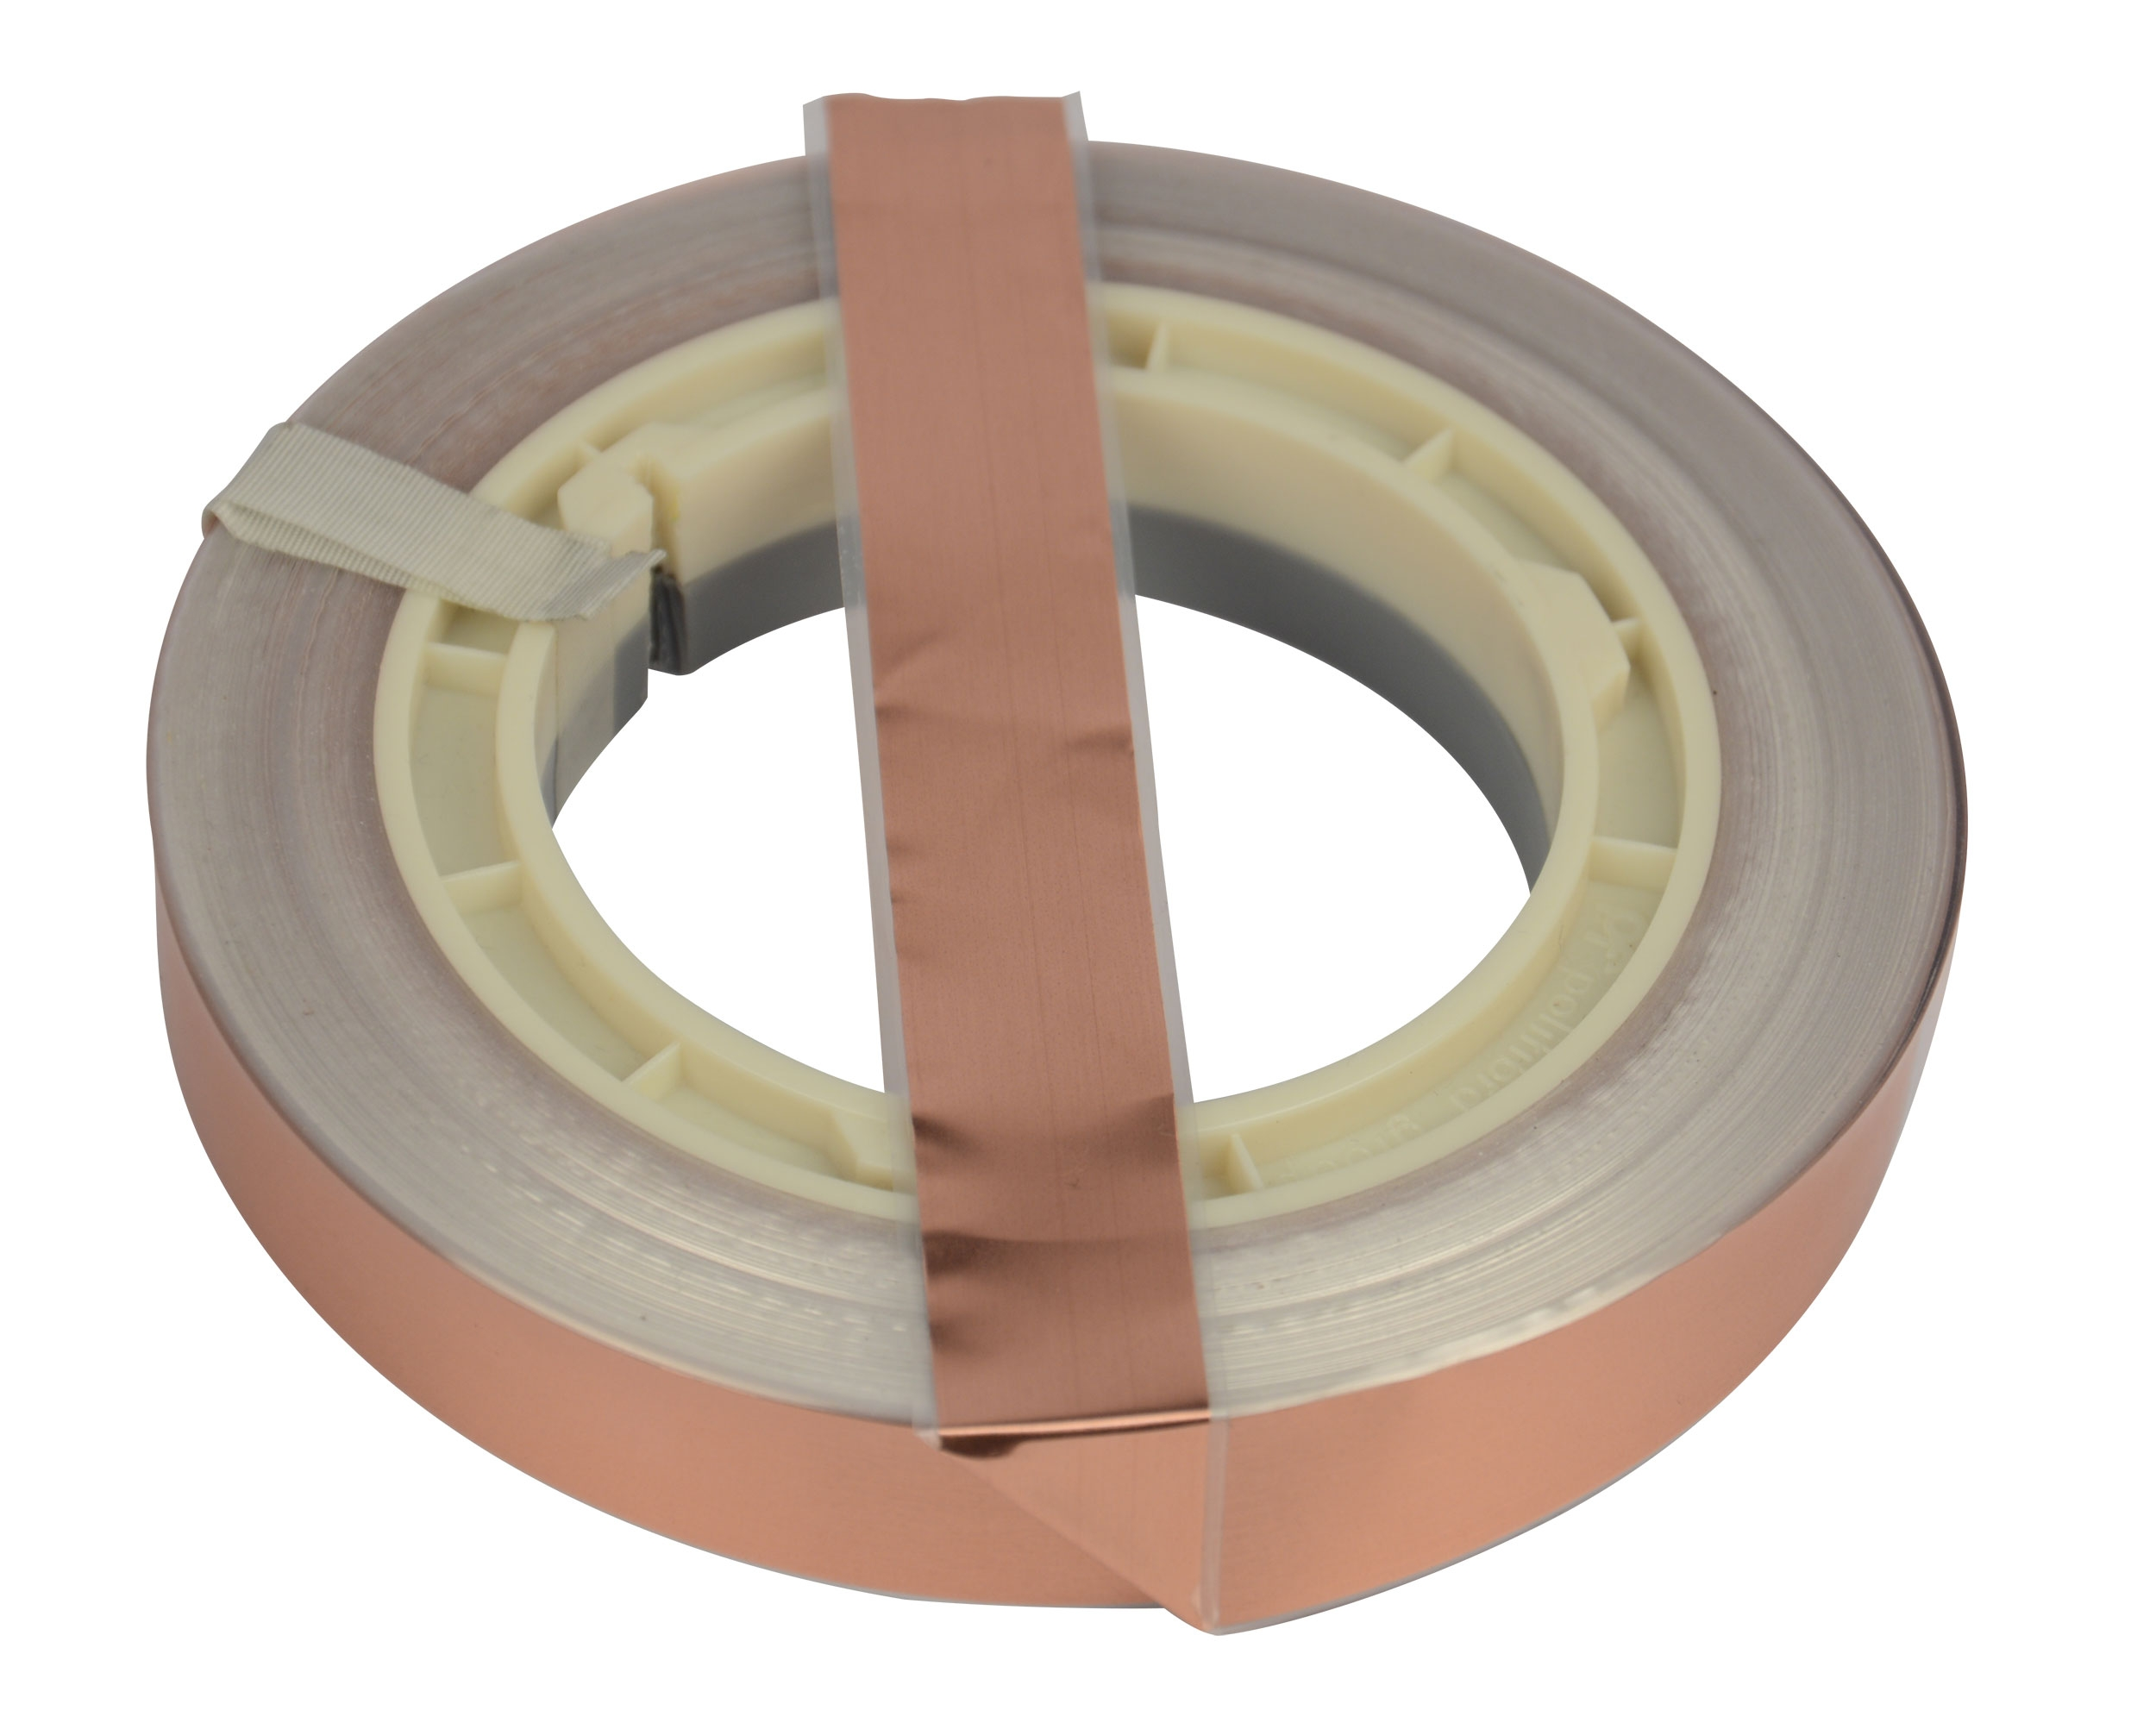 Copper tape 50m long - 18mm wide and 0.1mm thick